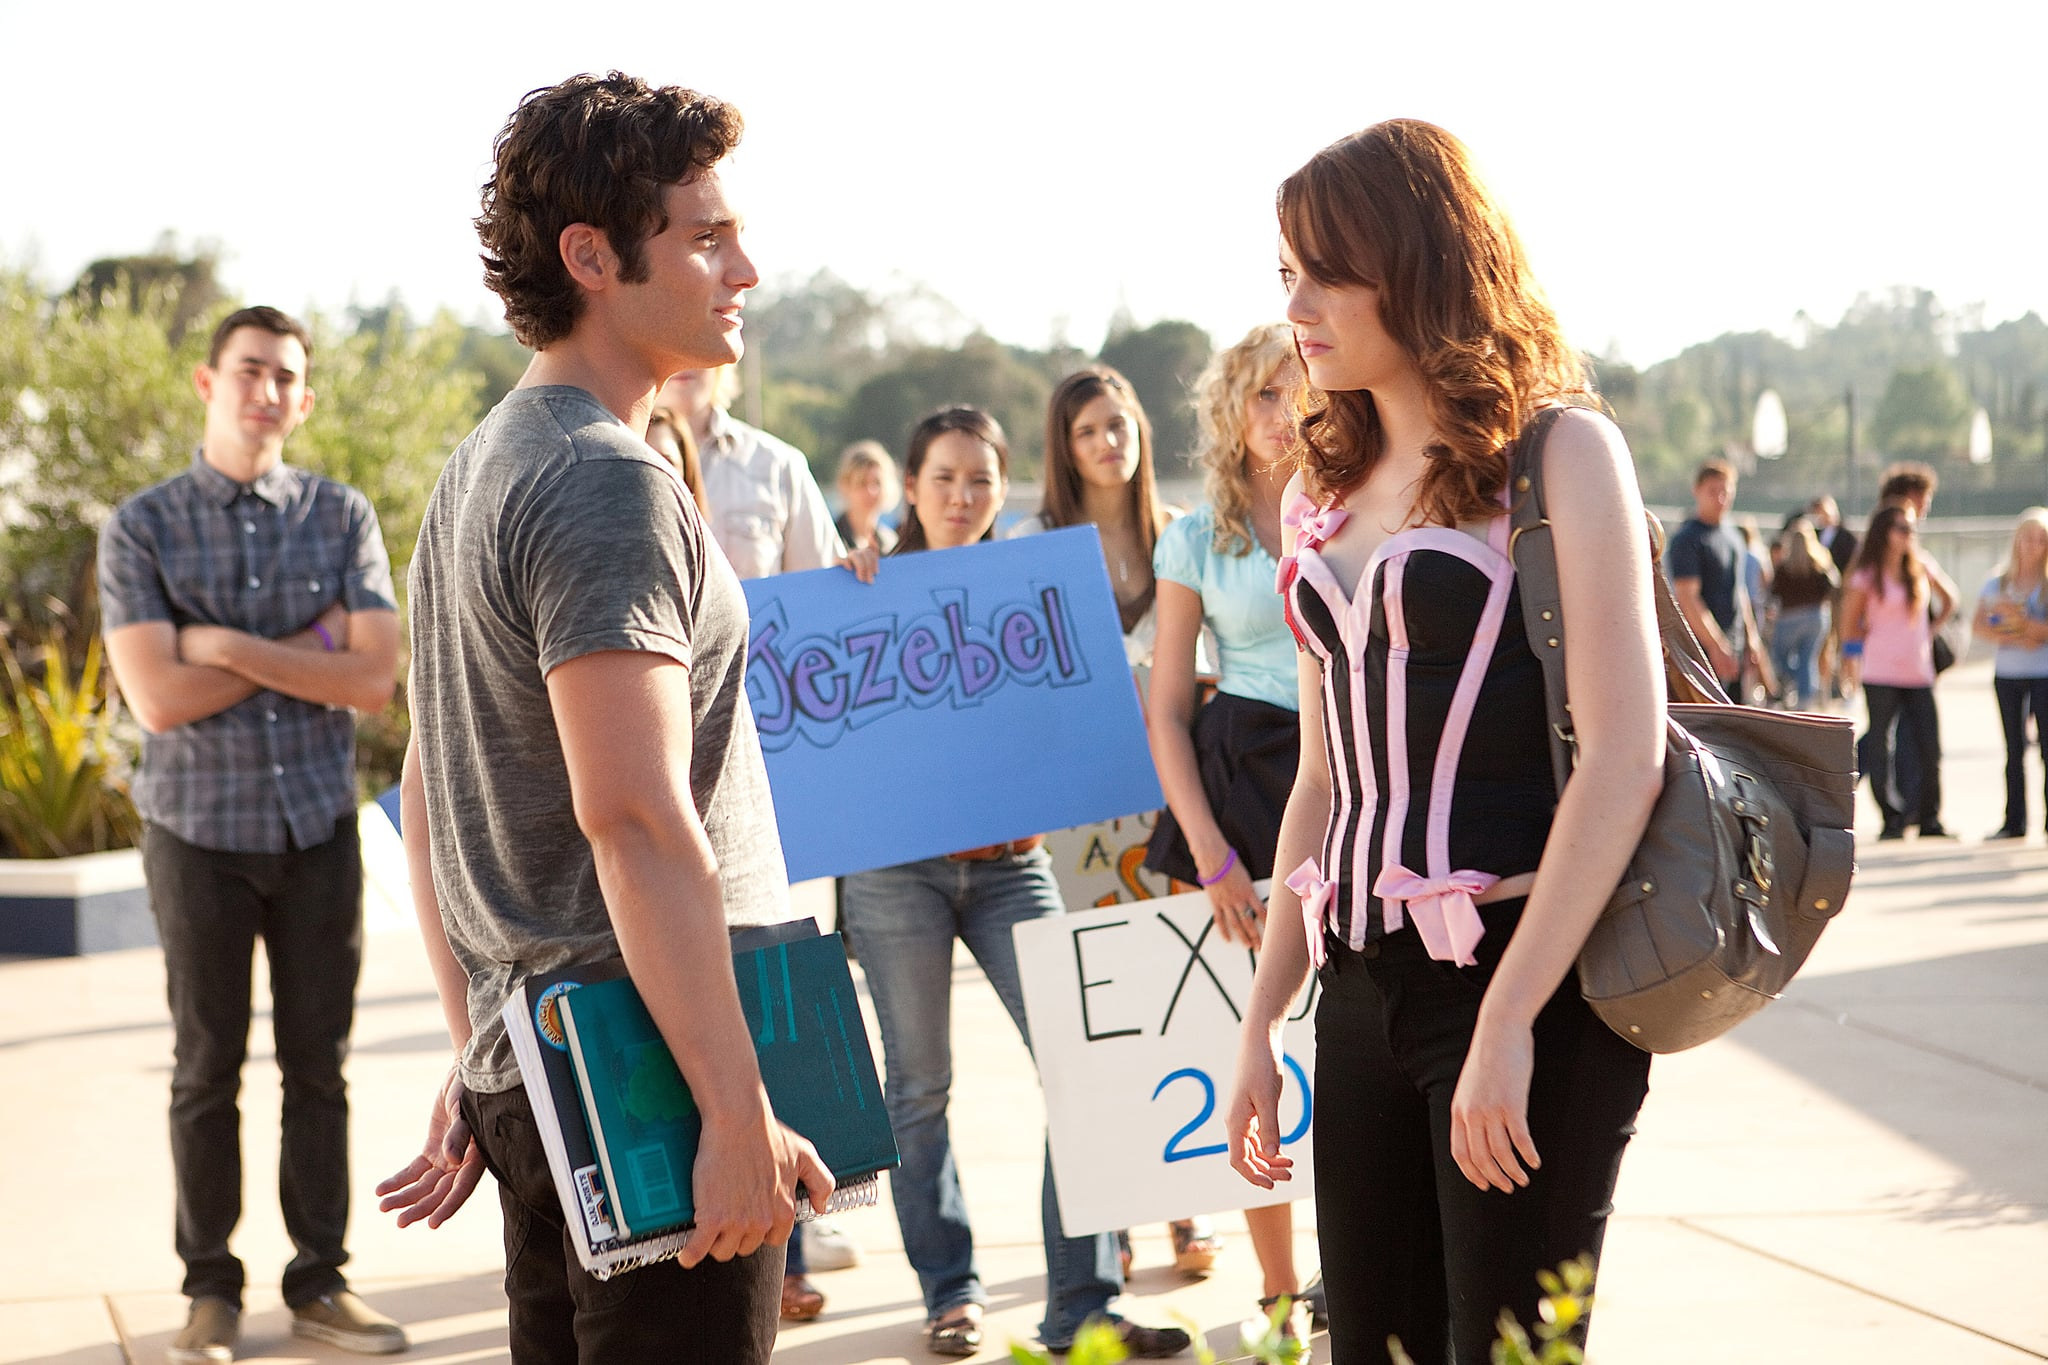 EASY A, from left: Penn Badgley, Emma Stone, 2010. ph: Adam Taylor/Screen Gems/Courtesy Everett Collection